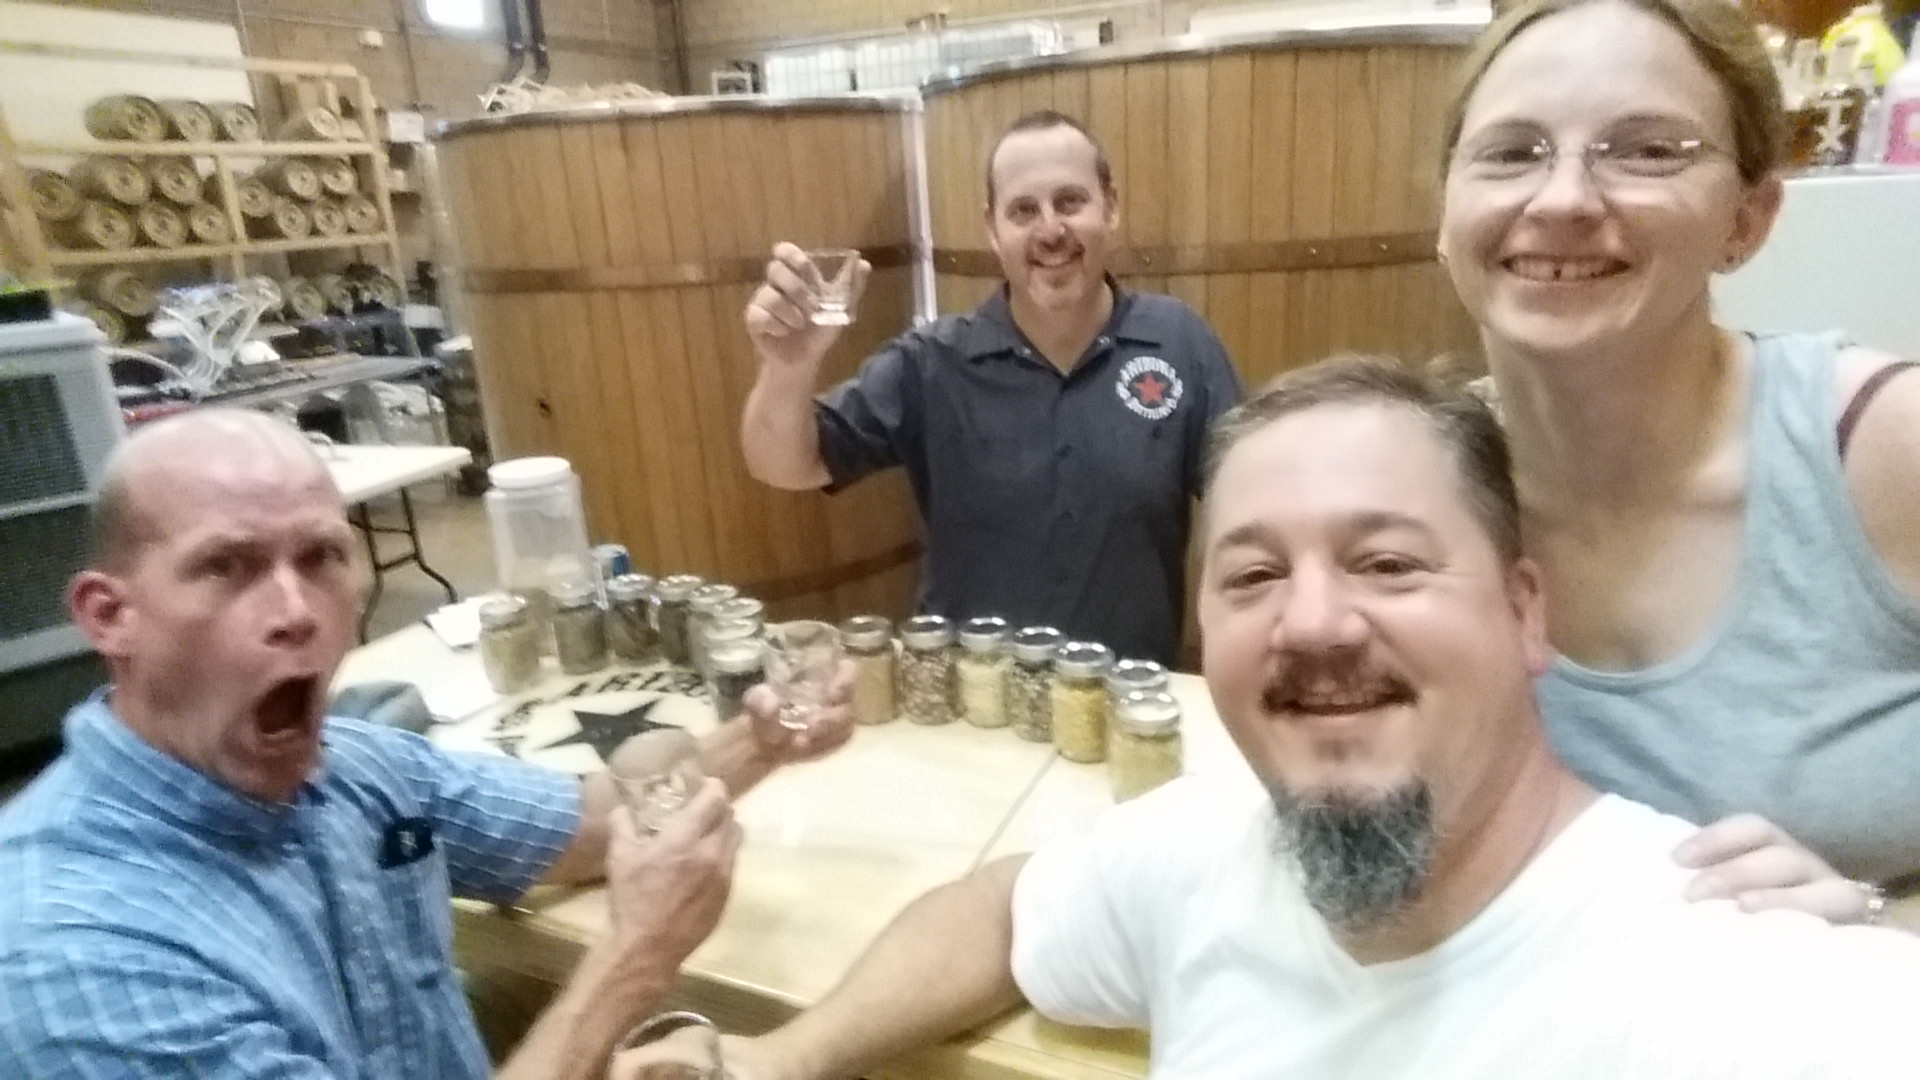 Tasting at Arizona Distilling Co.